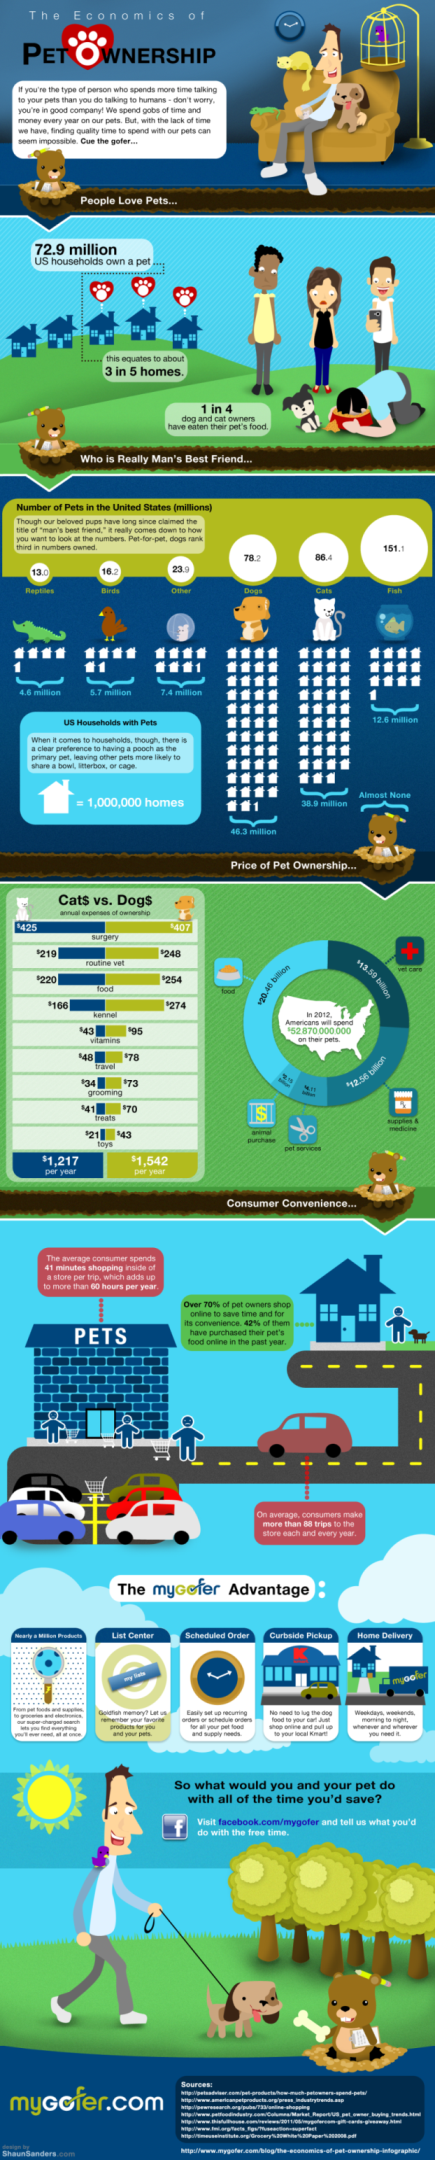 4. The Economics of pet ownership